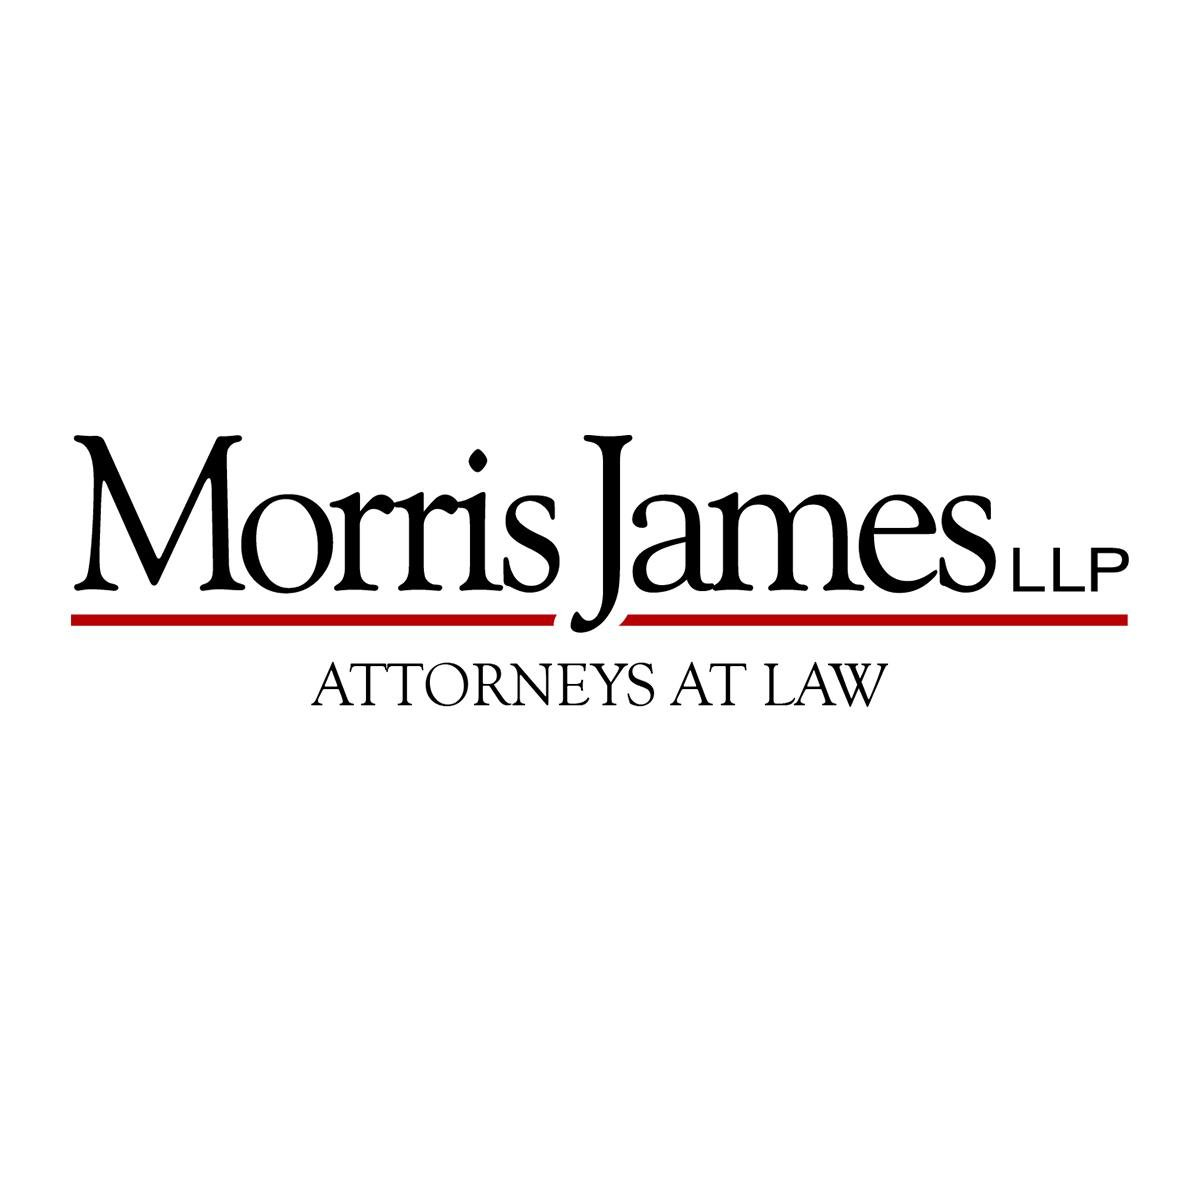 Morris James Llp Top Fundraiser For American Diabetes Associations Step Out: Walk To Stop Diabetes